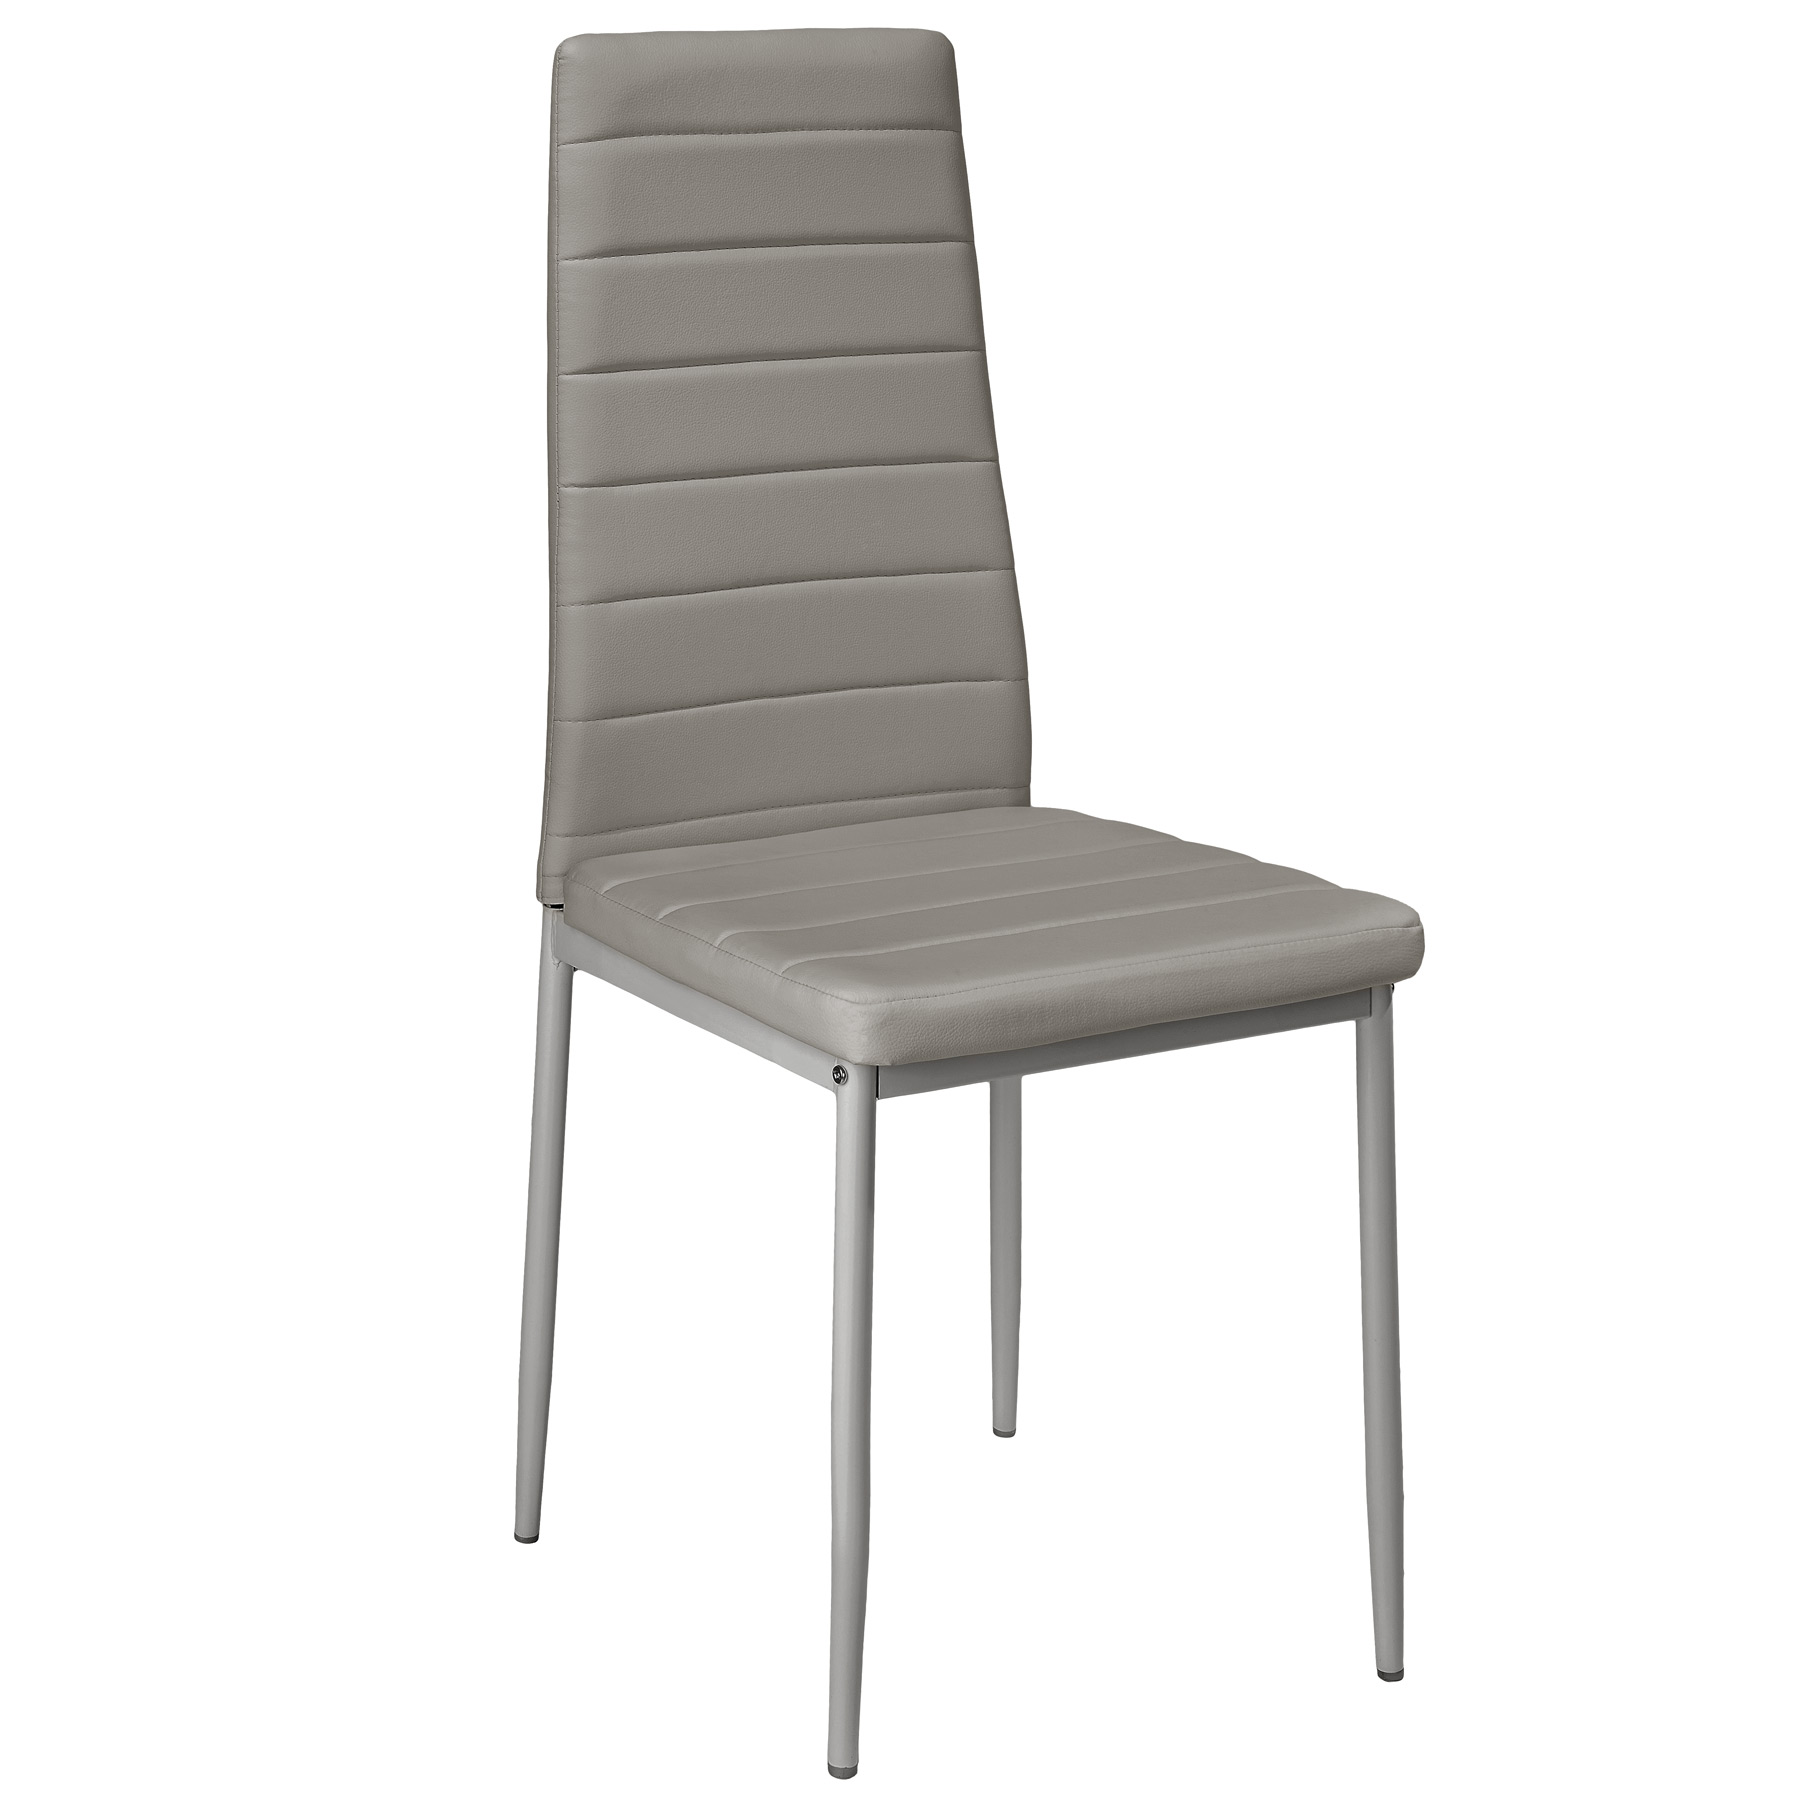 6 modern dining chairs dining room chair table faux leather furniture cozy grey ebay. Black Bedroom Furniture Sets. Home Design Ideas